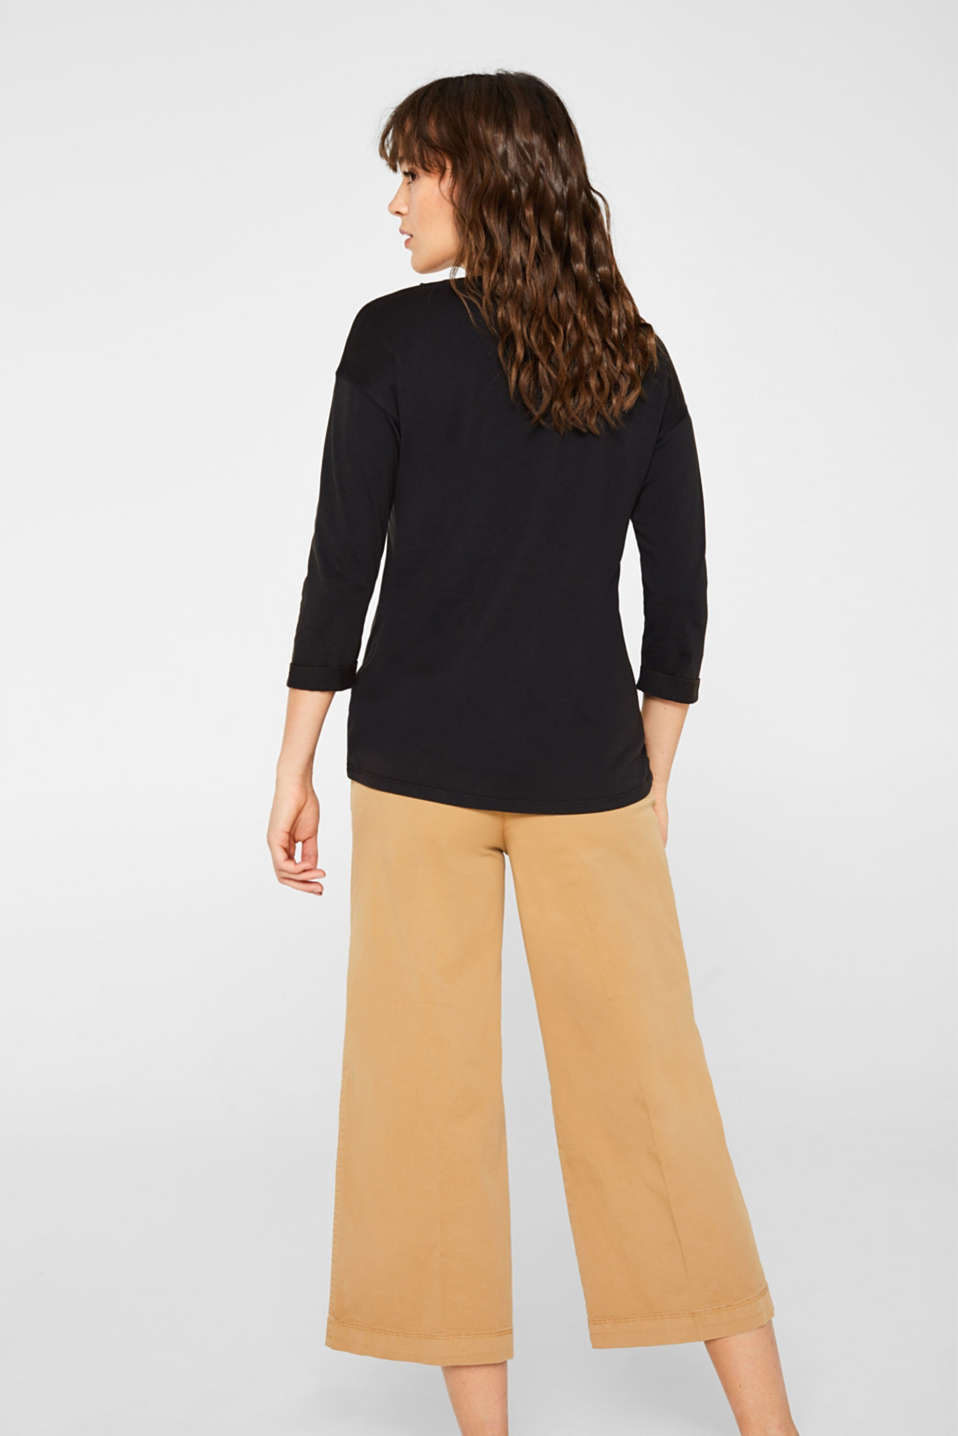 Top in a garment-washed look, 100% cotton, BLACK, detail image number 3